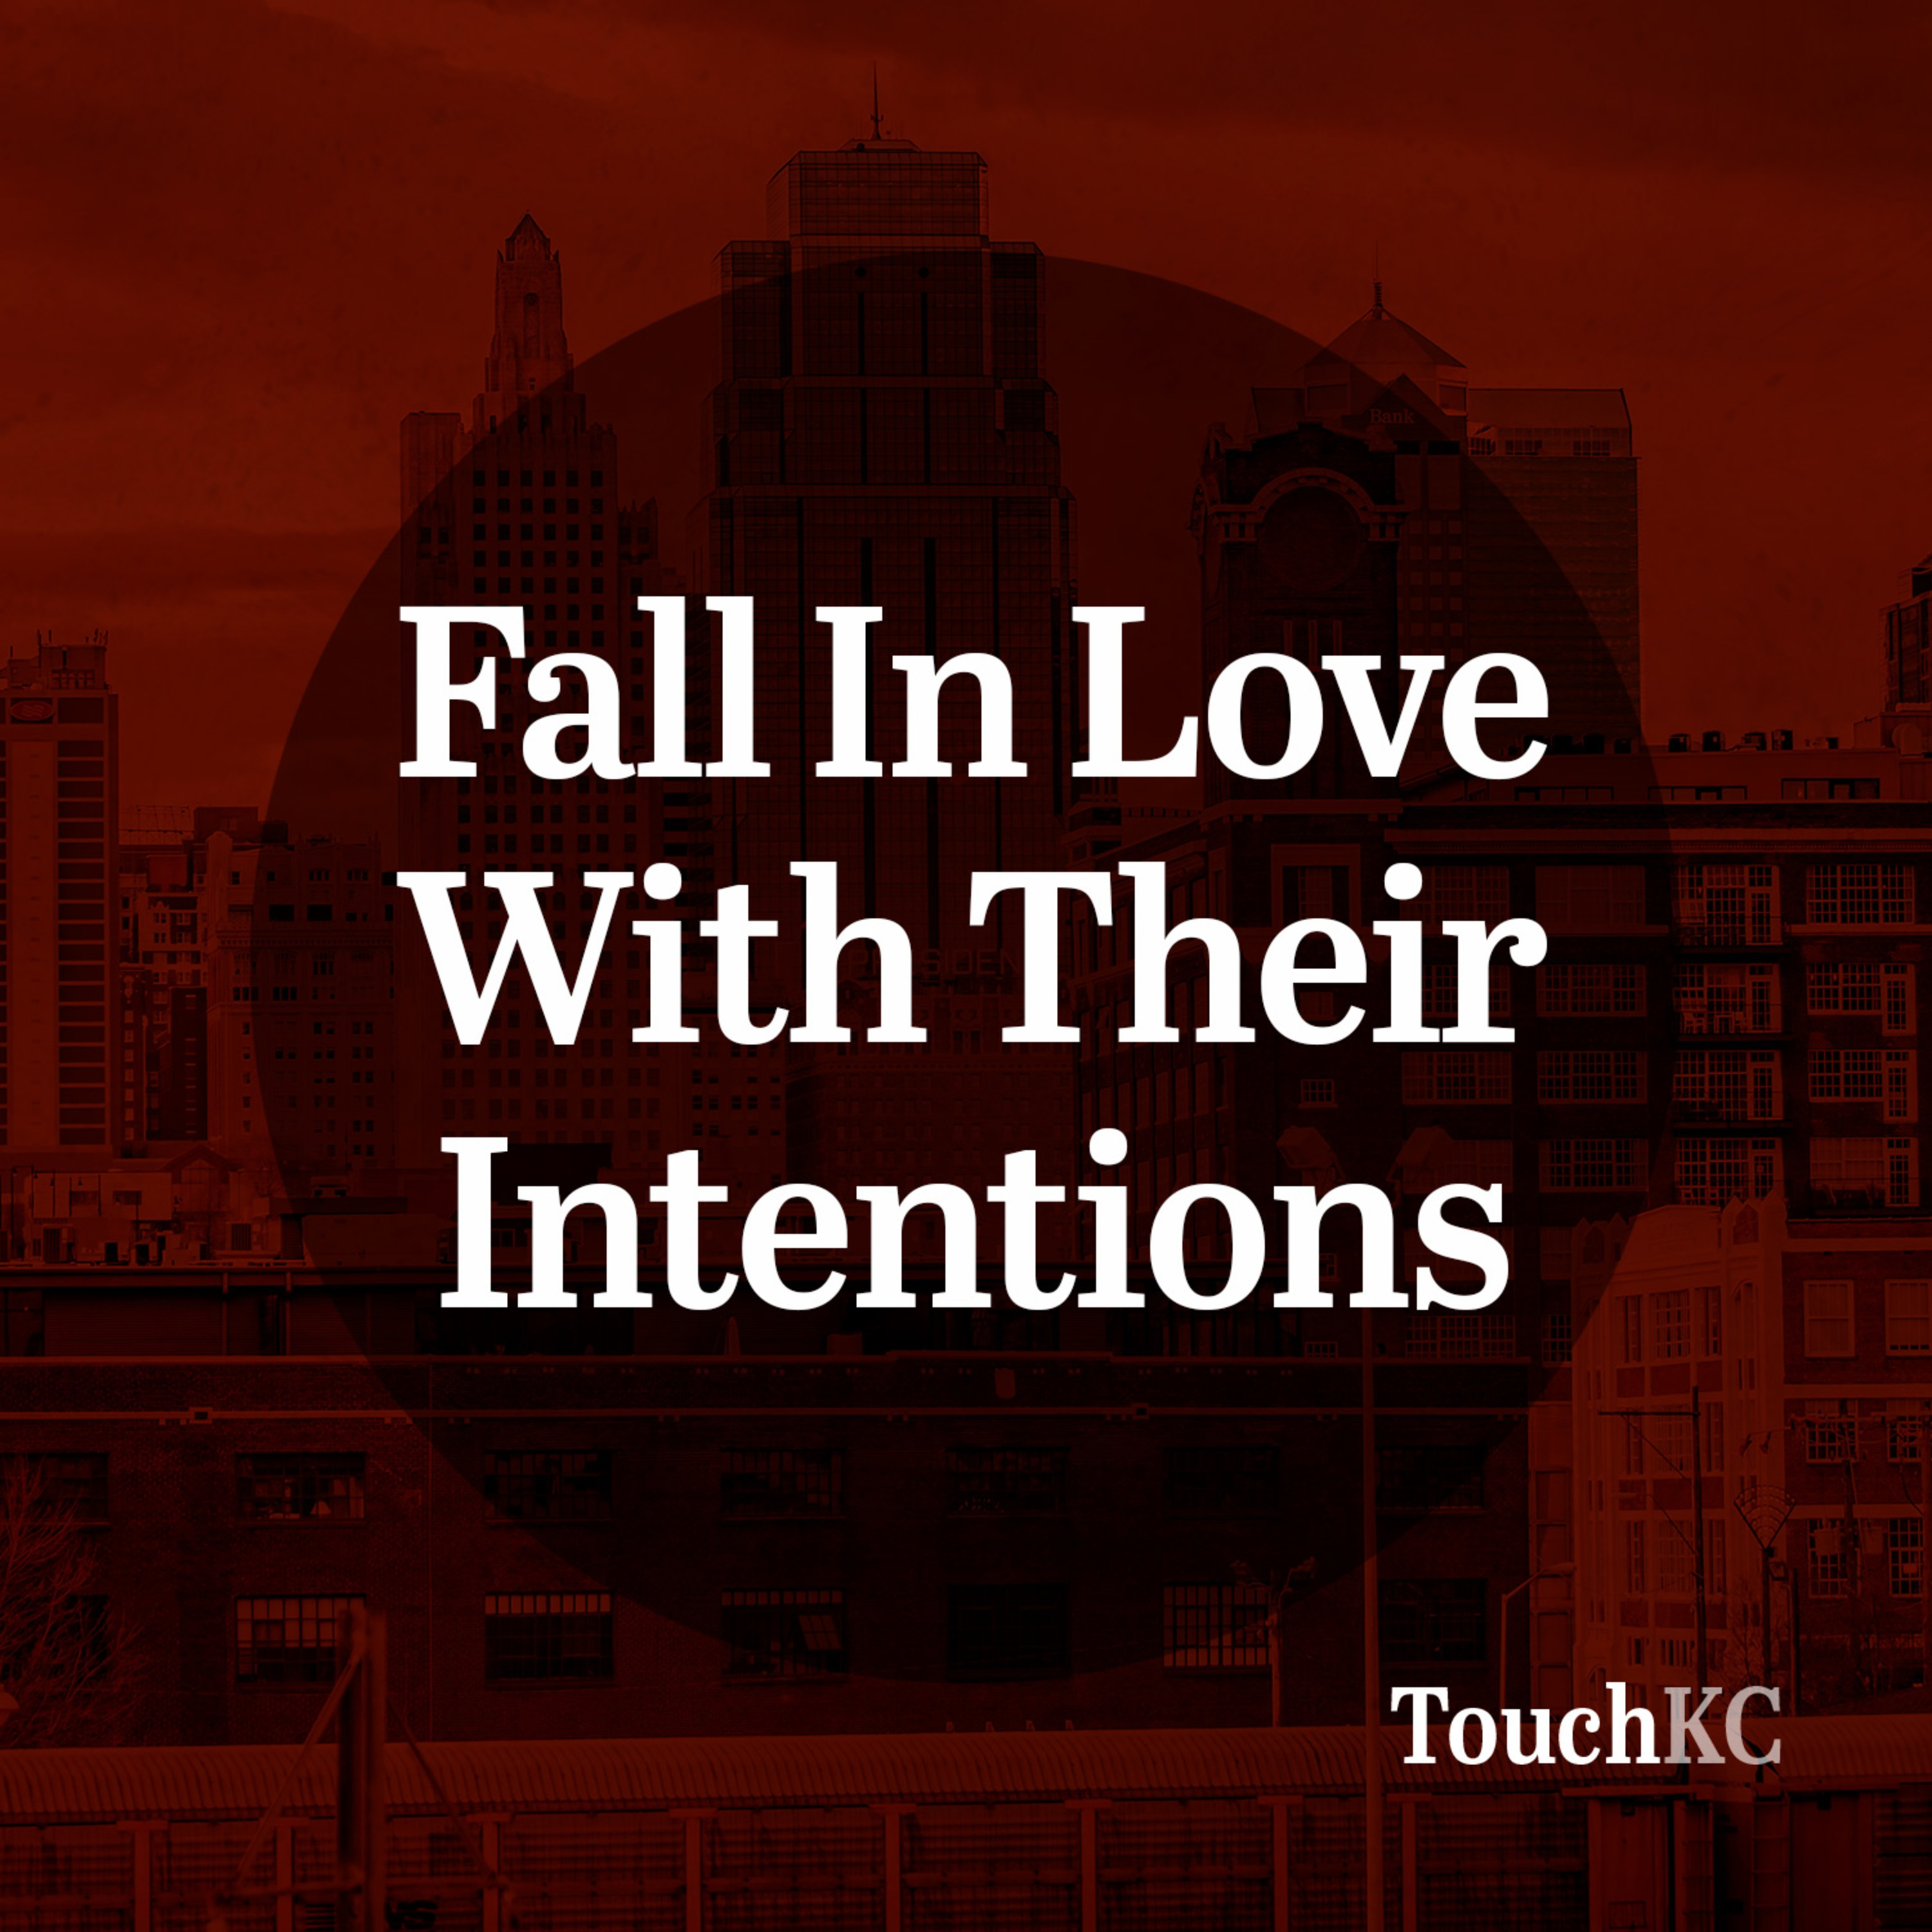 EP04 - Fall In Love With Their Intentions